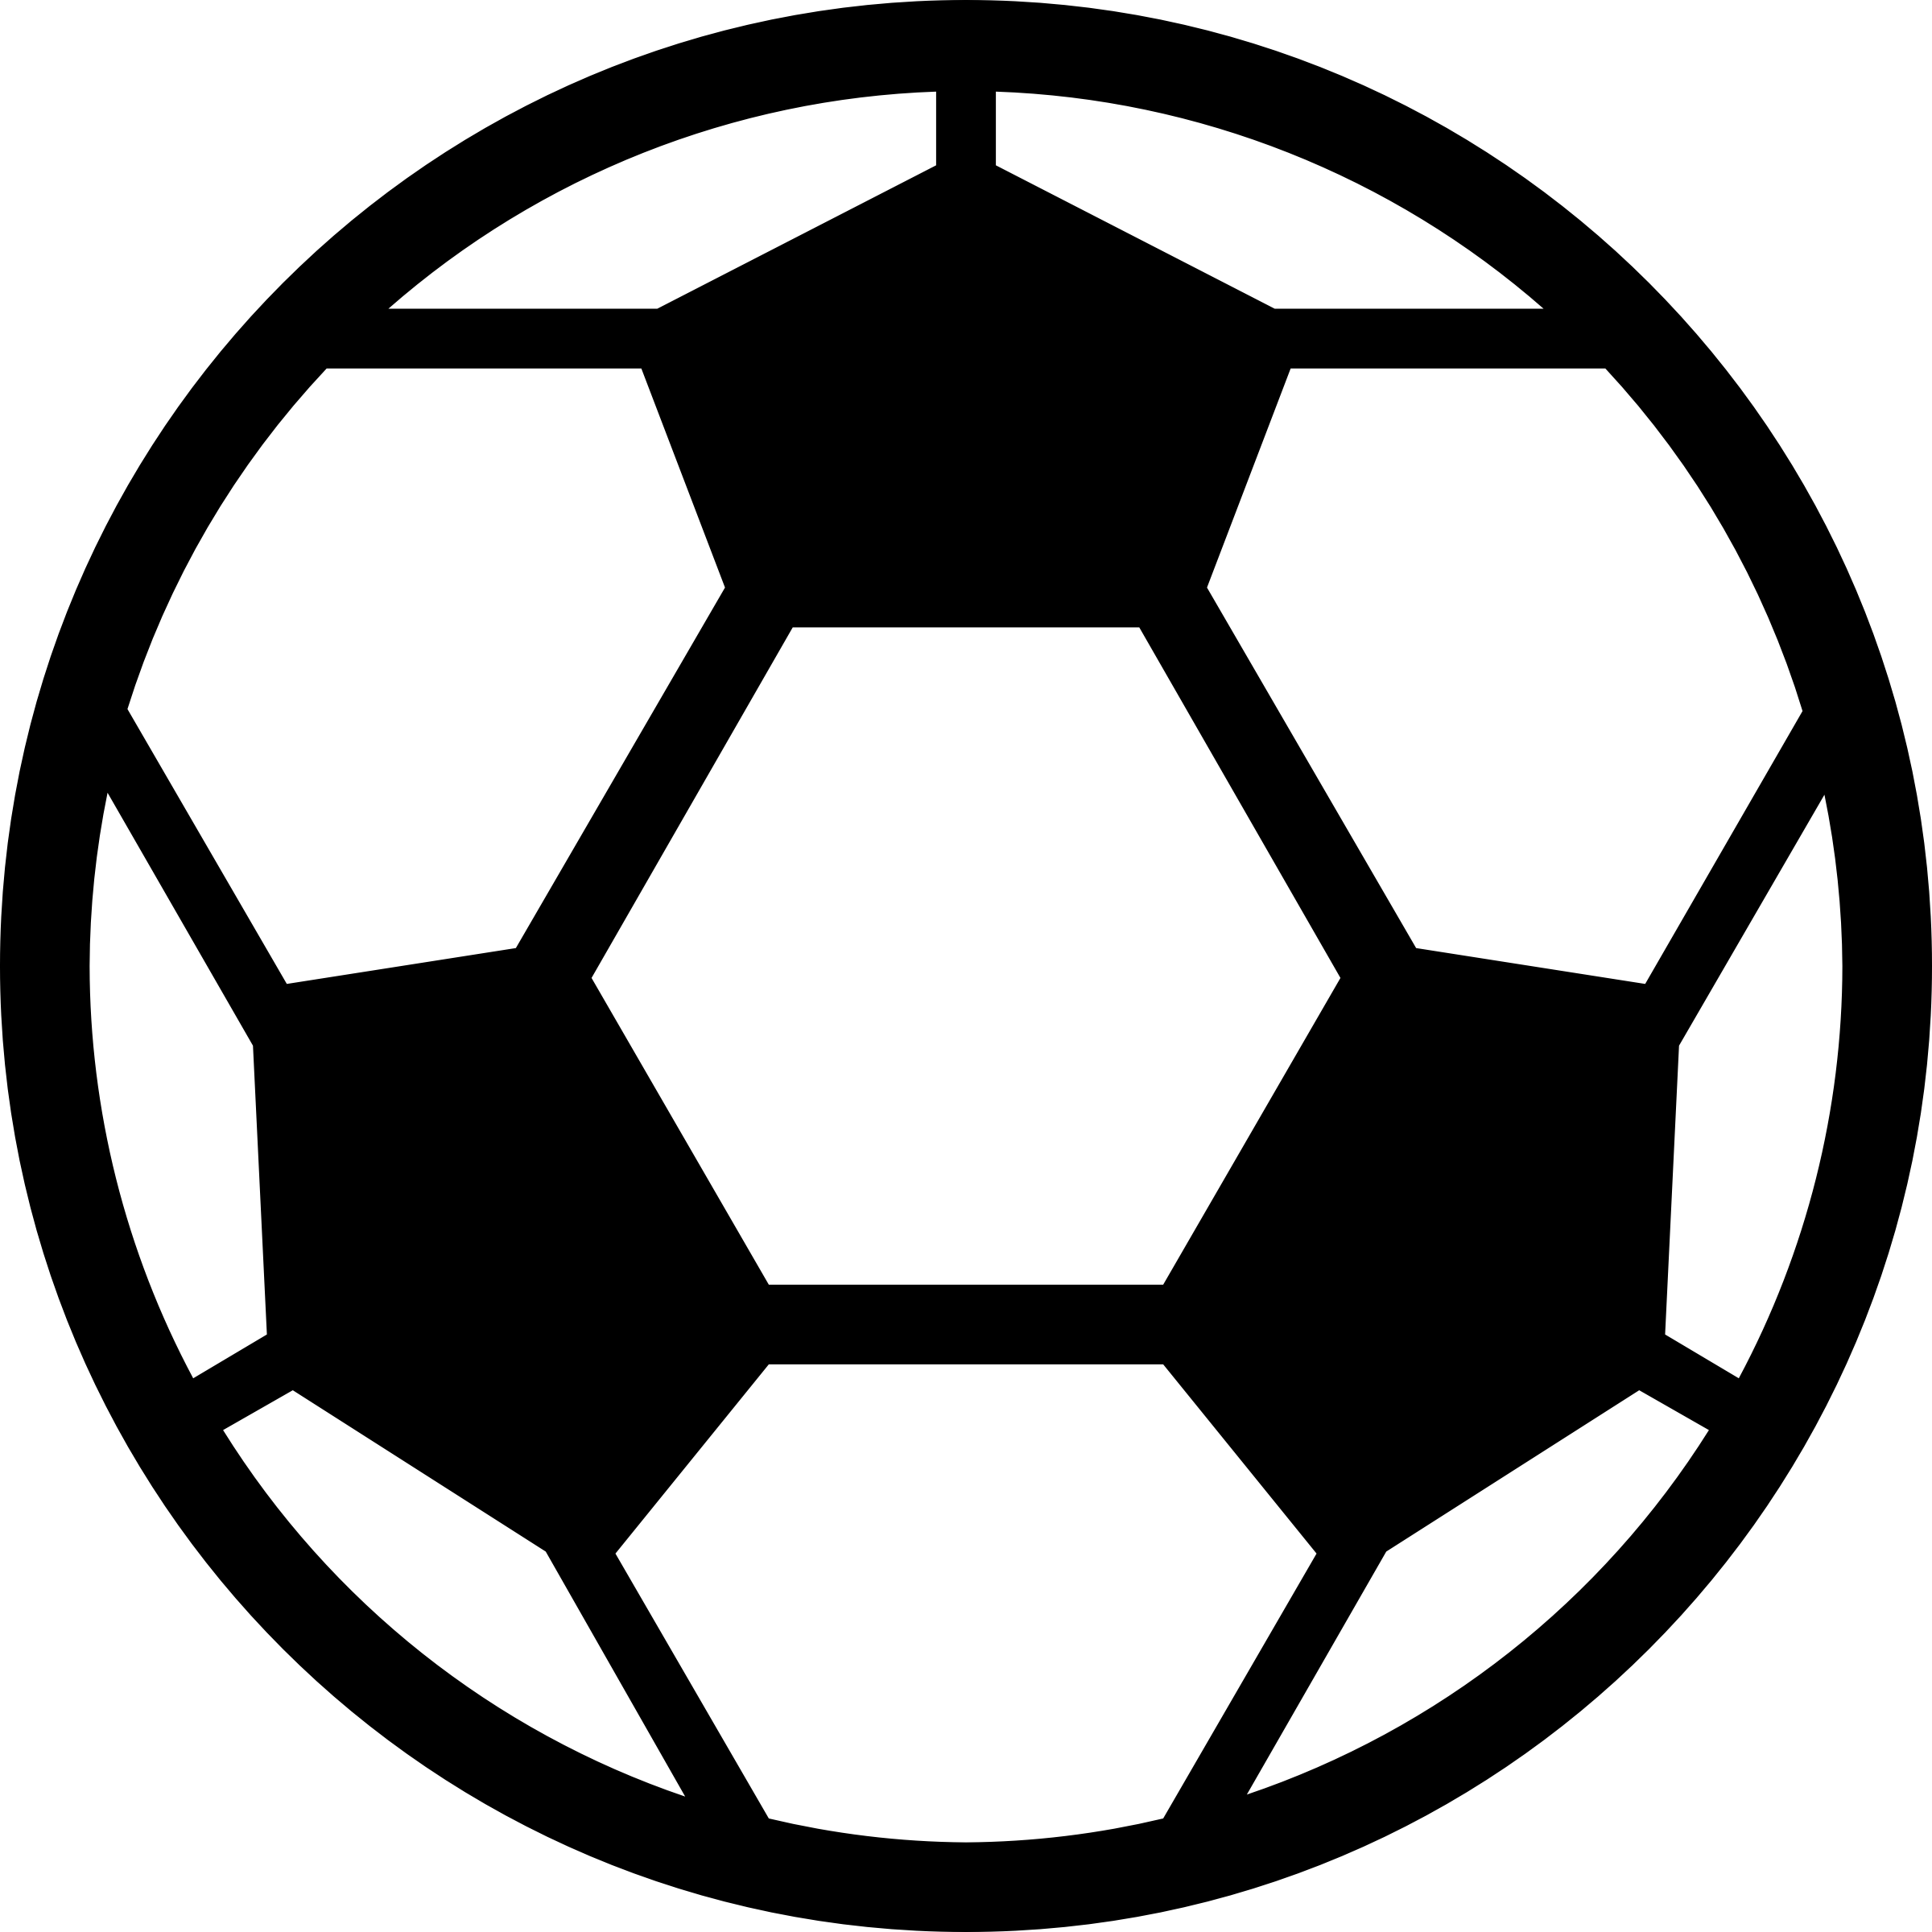 Soccer Ball Transparent Free Download Best Soccer Ball Transparent